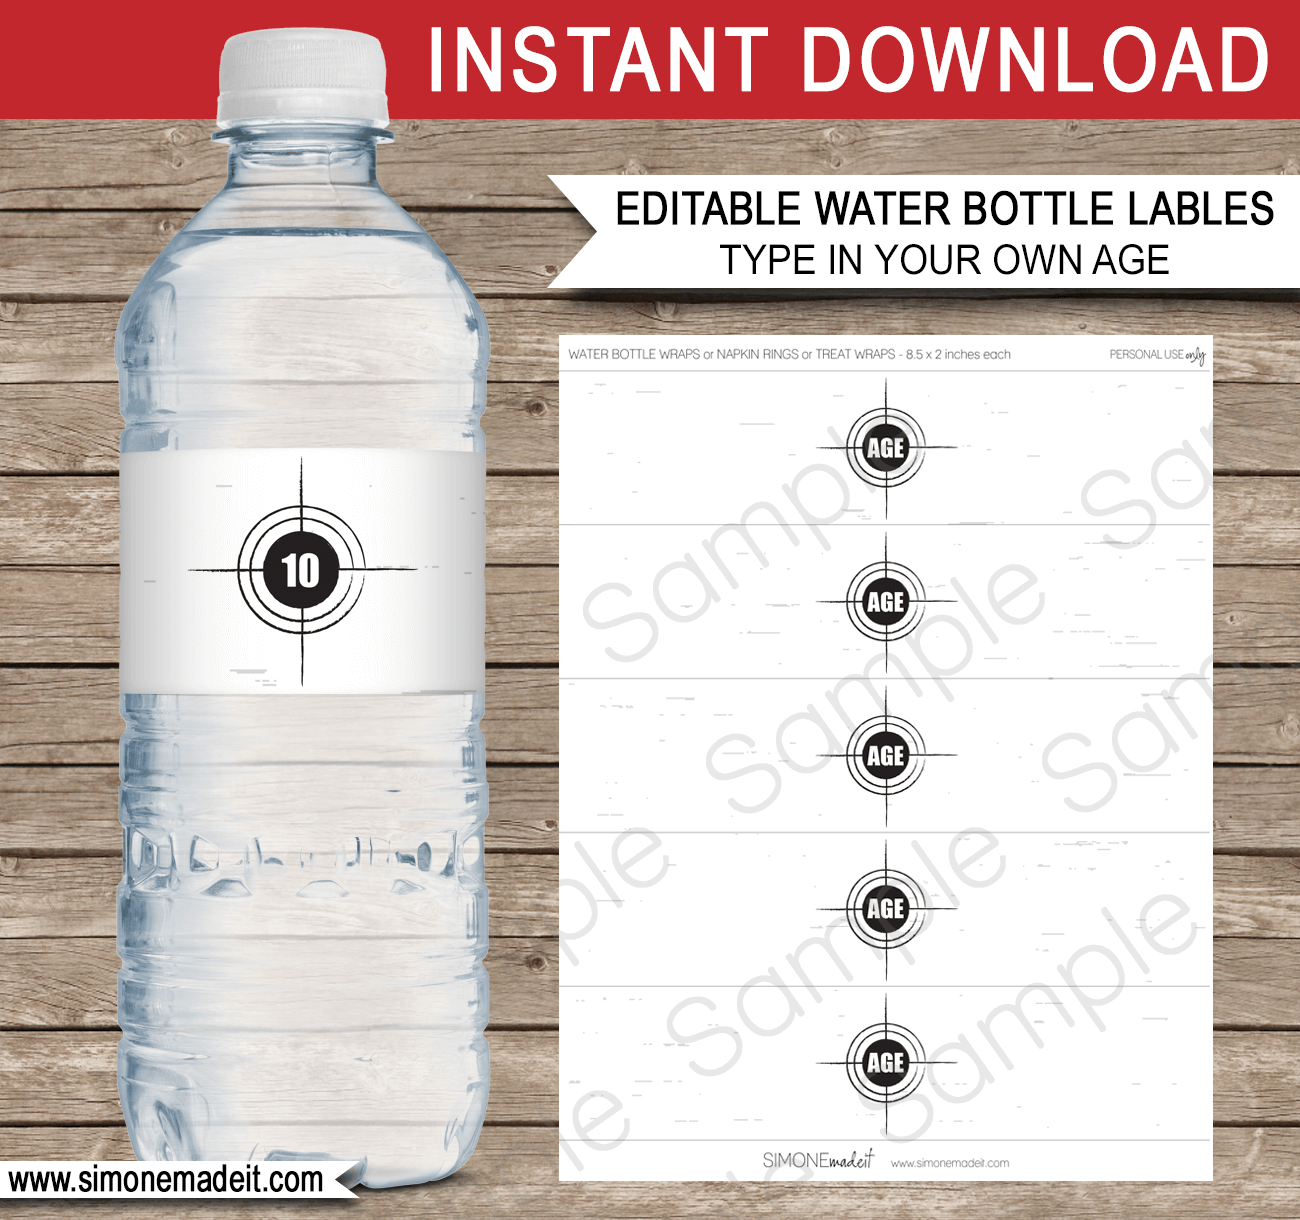 Printable Laser Tag Party Water Bottle Labels | Editable DIY Template | $3.00 INSTANT DOWNLOAD via SIMONEmadeit.com